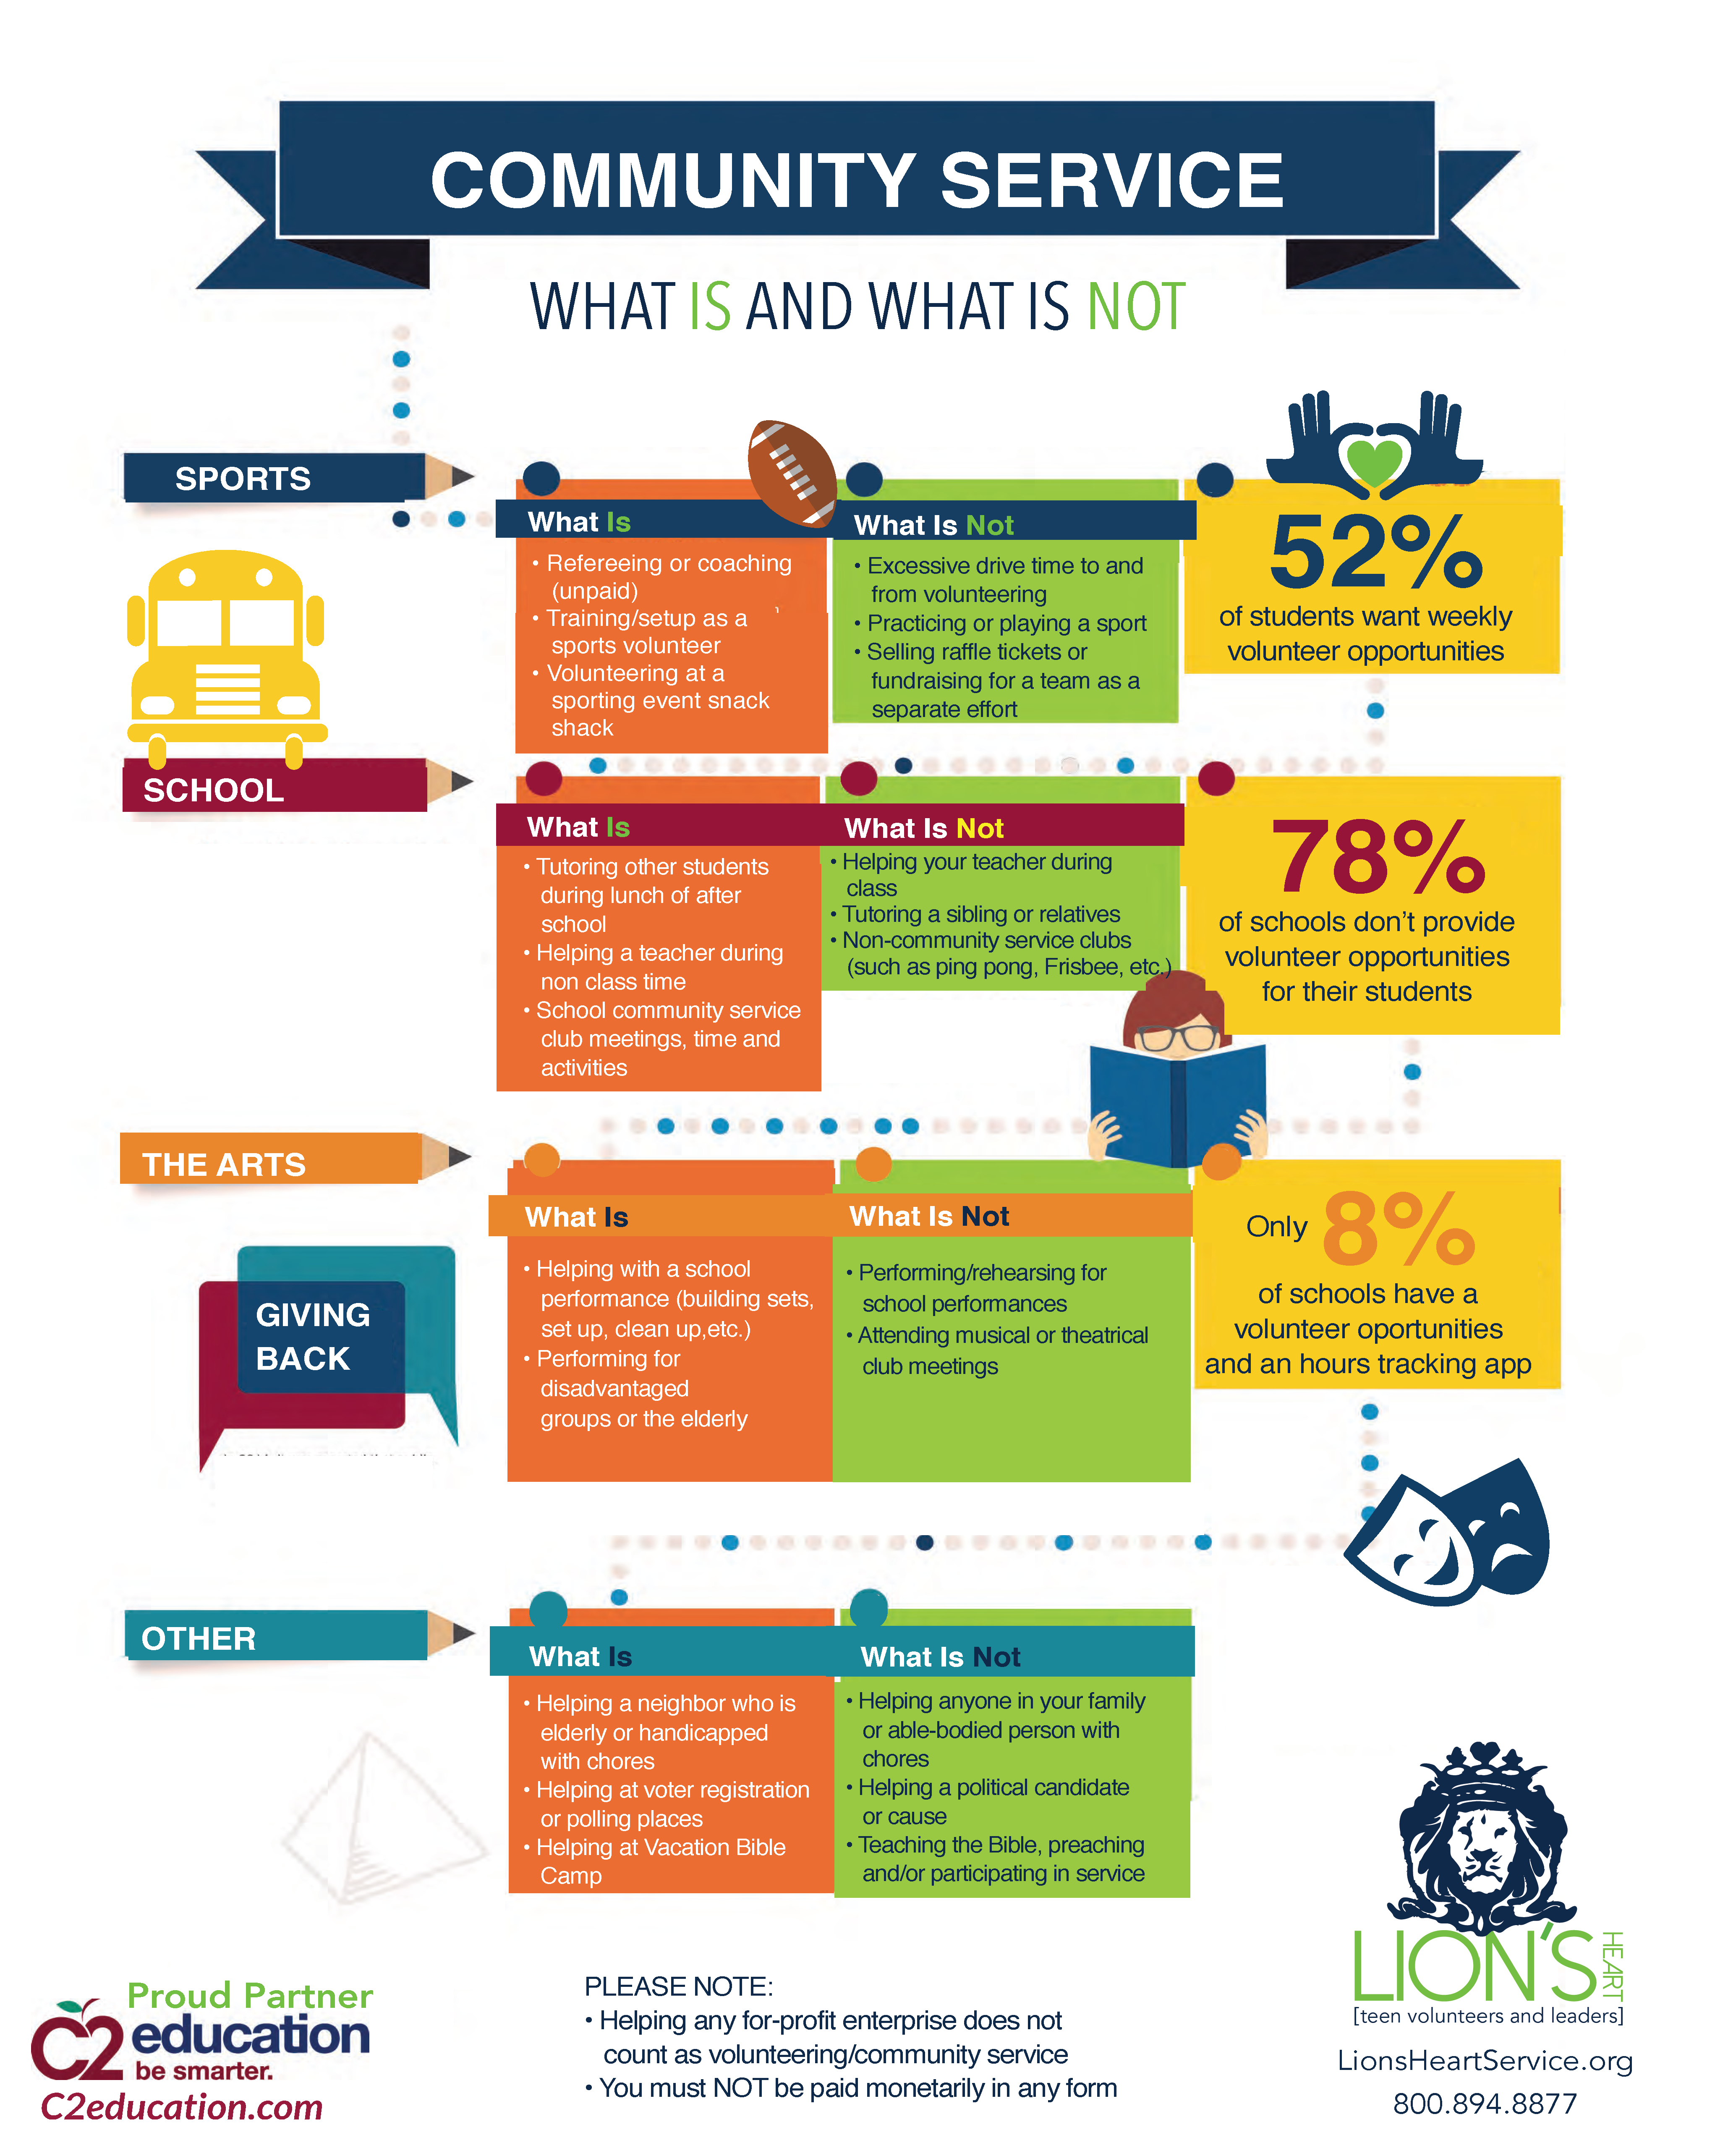 Download the What is Community Service infographic